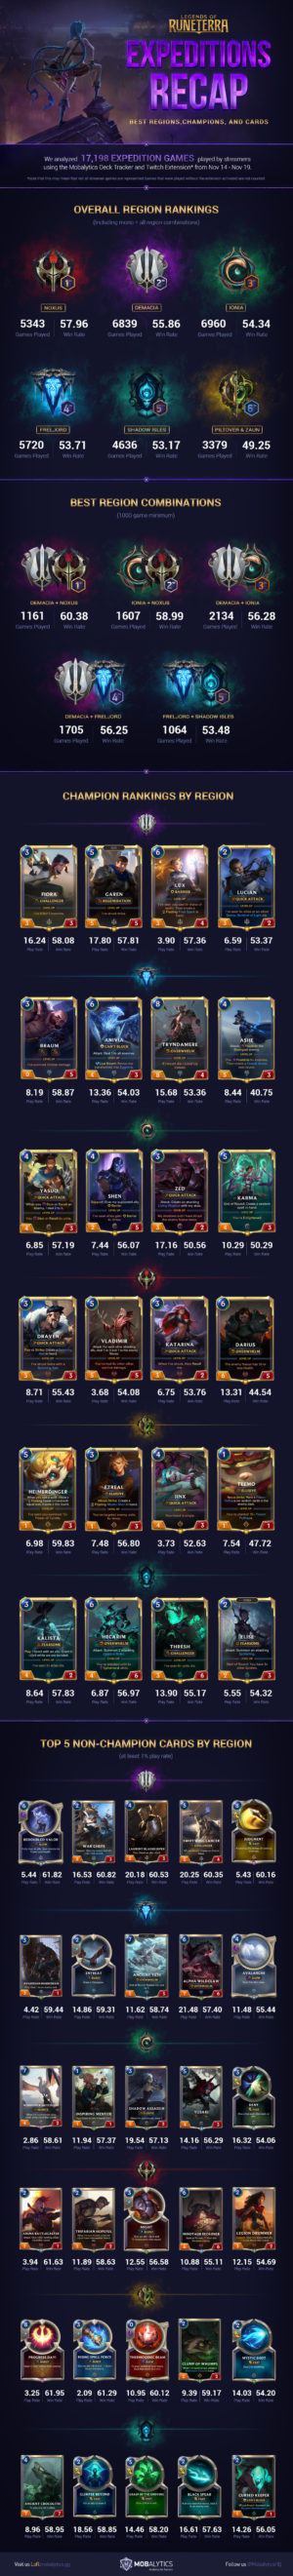 The Best Expeditions Cards from the Legends of Runeterra (Closed Beta Recap)